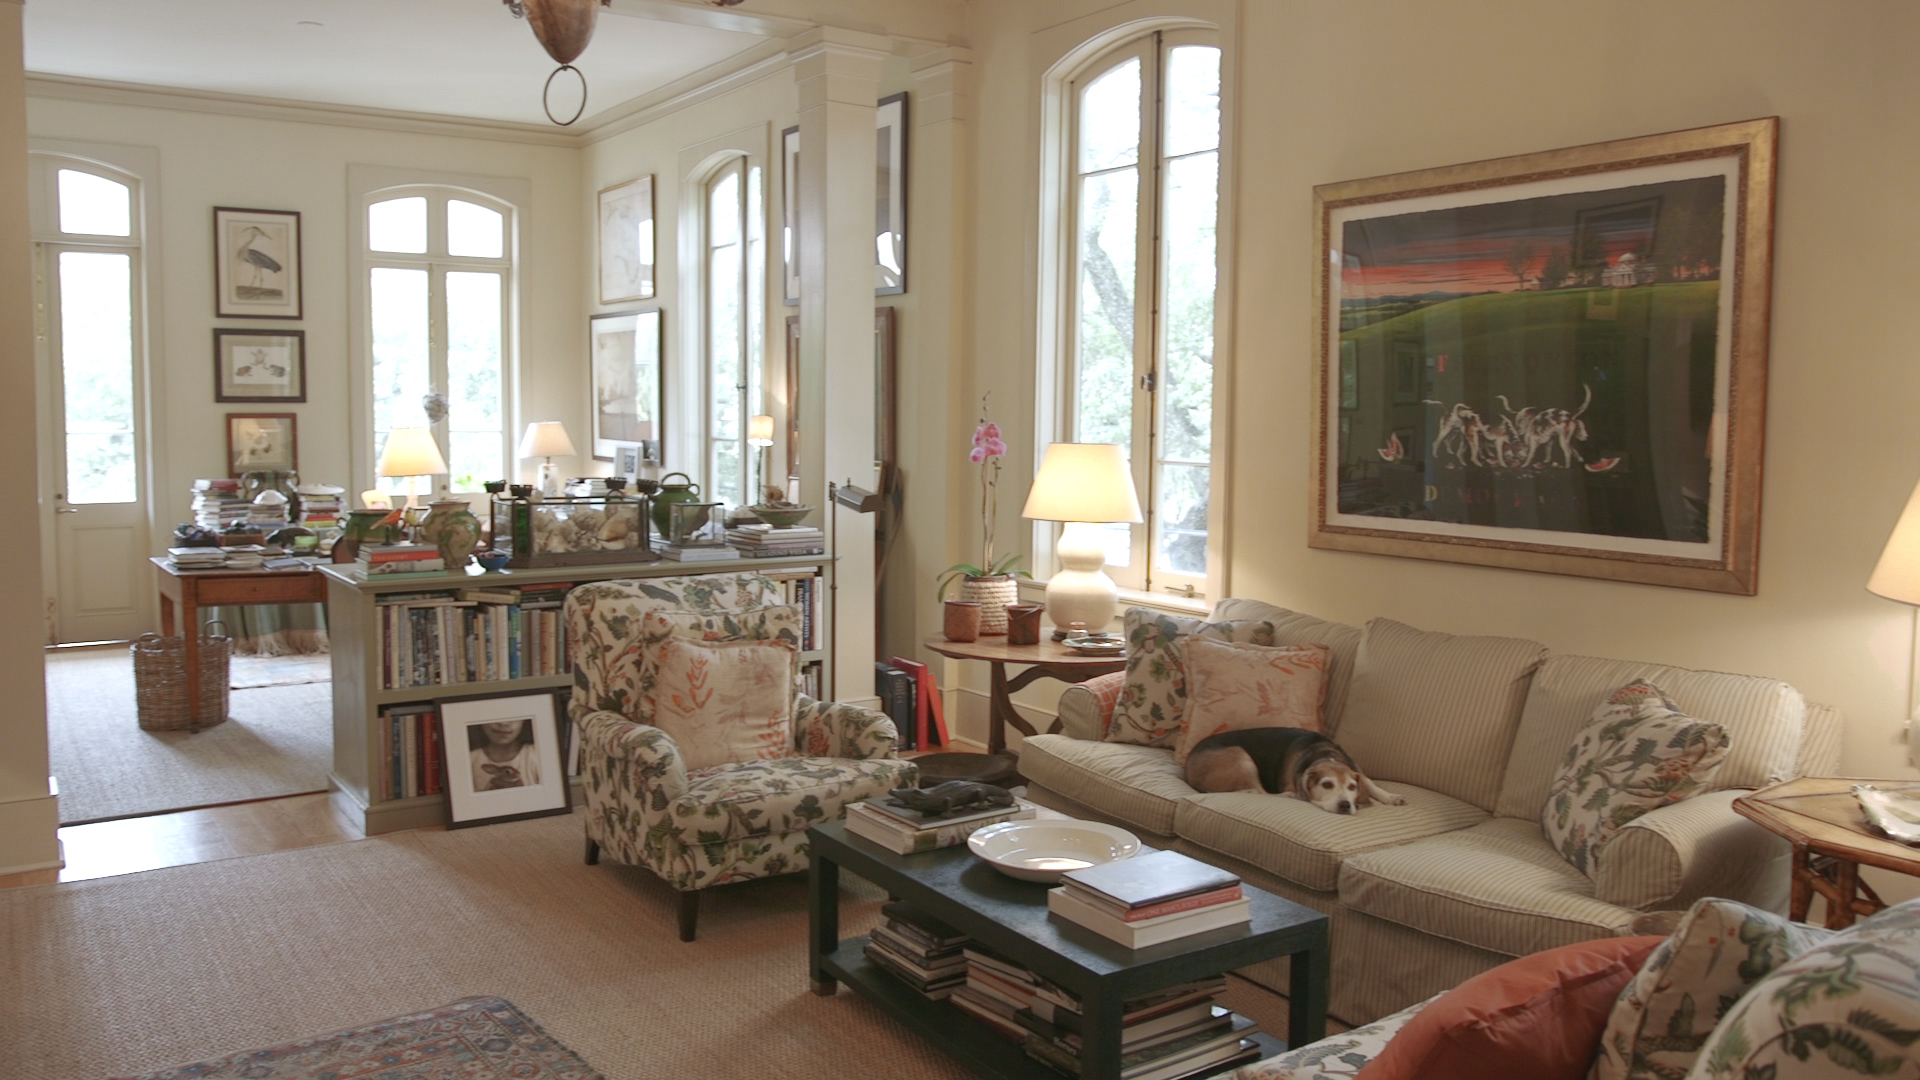 Inside the NOLA Home of Julia Reed - NBC Chicago